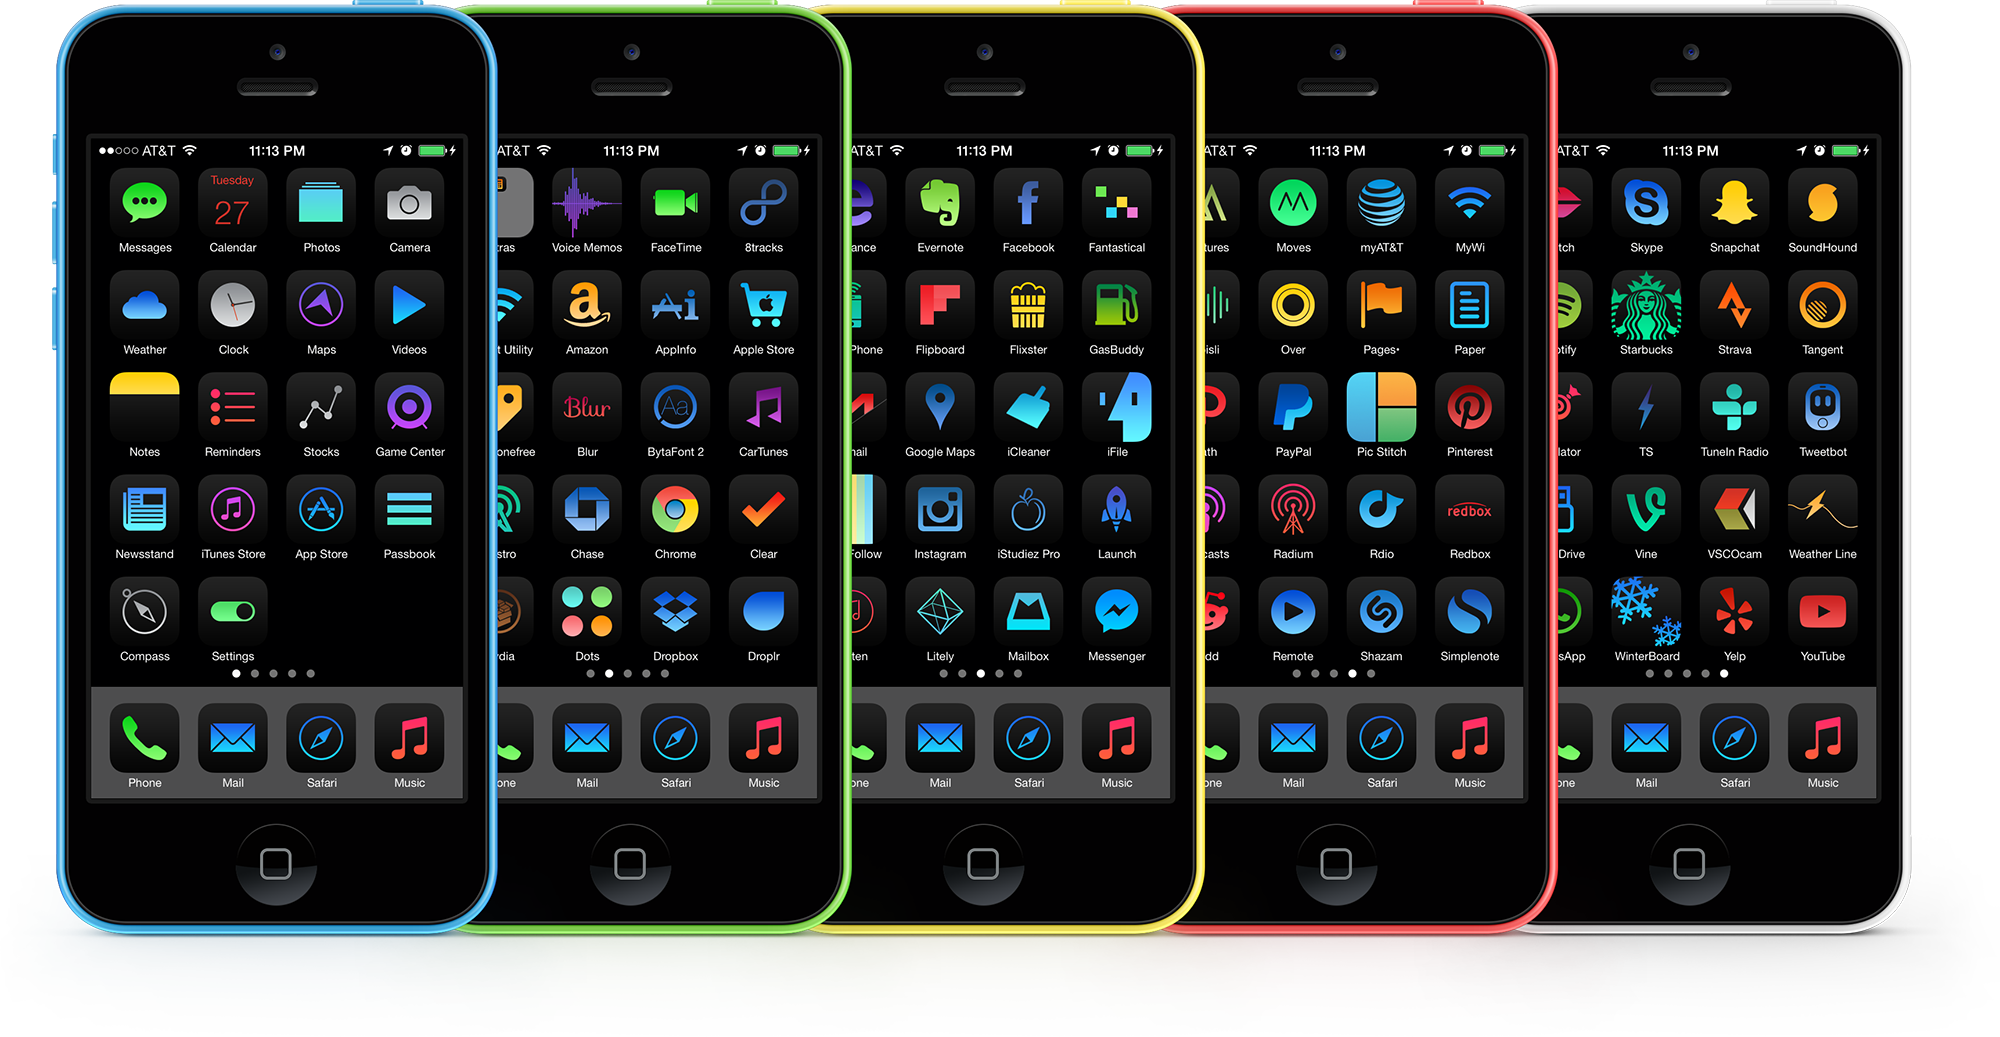 Obscuro and iOS 7 Theme by kon